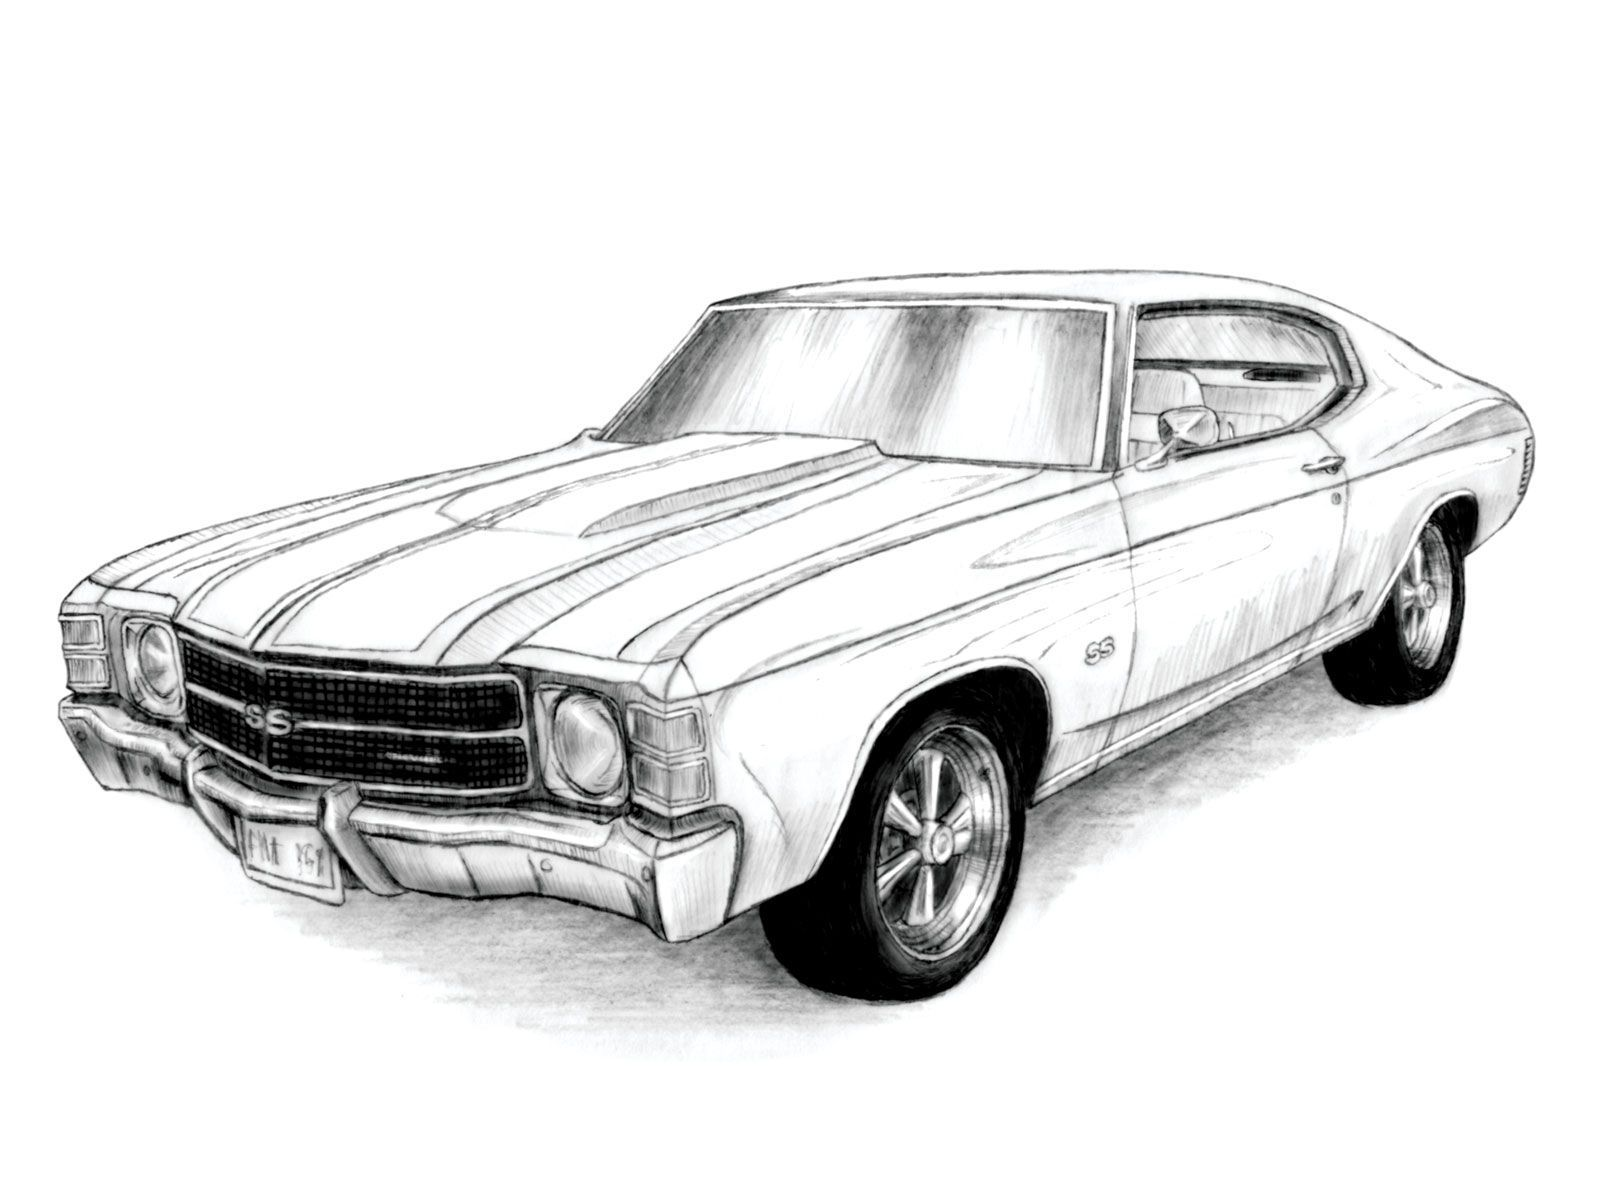 dub cars coloring pages - photo#21